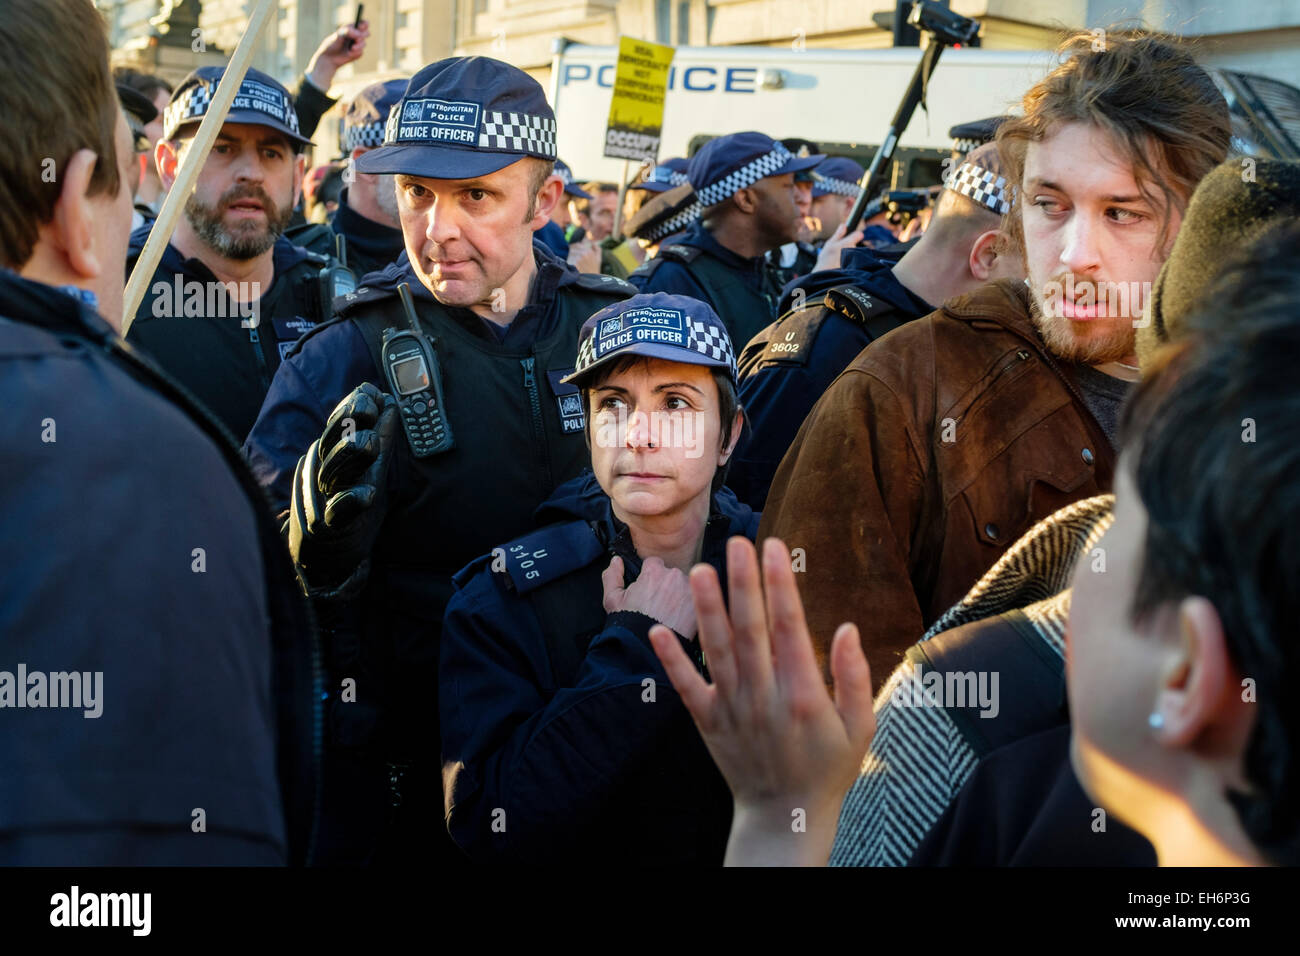 London, UK. 7th March, 2015  'Time for Action' climate change march.  Pictured: Metropolitan police officers - Stock Image